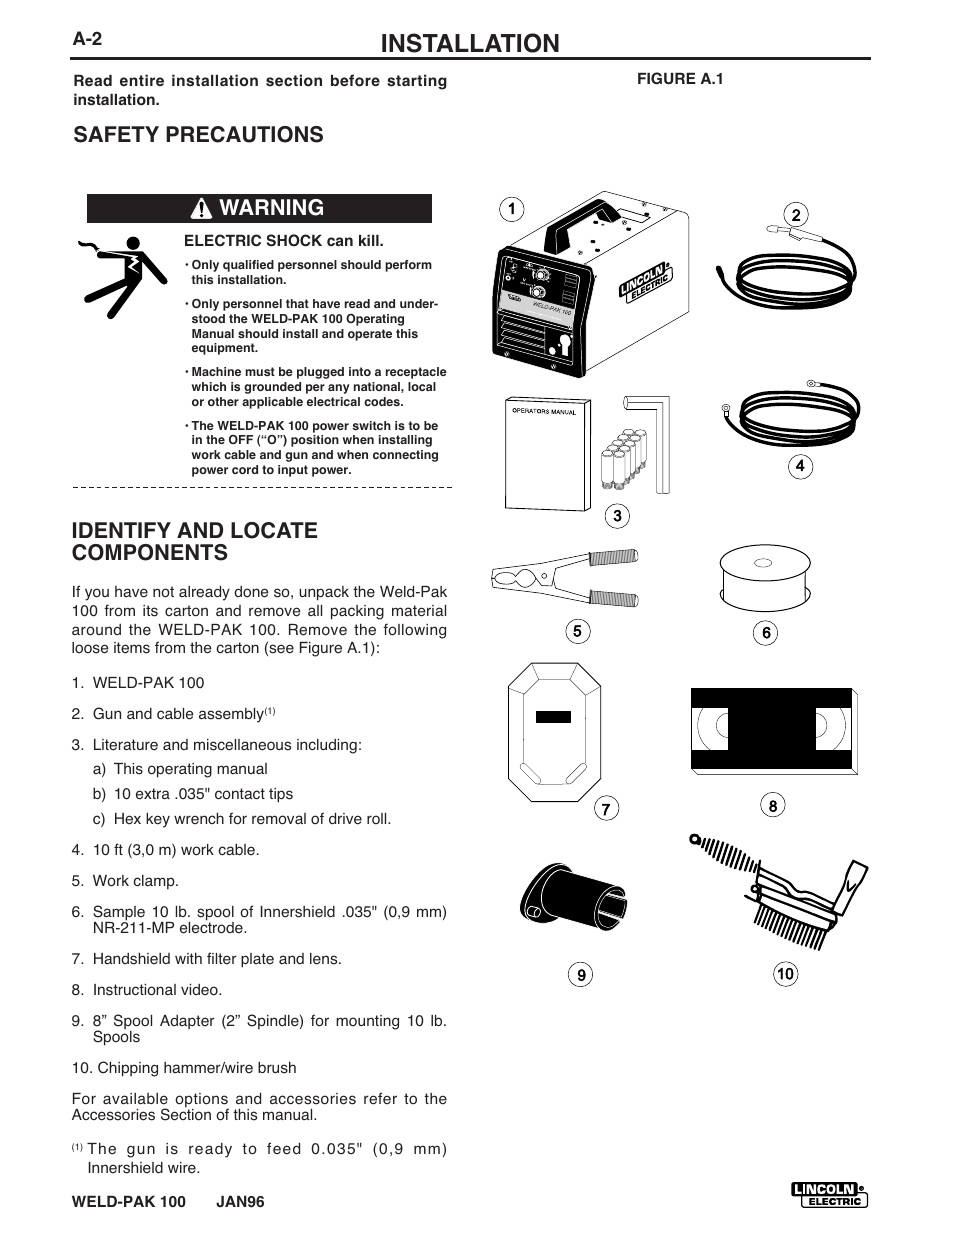 Installation, Safety precautions identify and locate components, Warning | Lincoln  Electric WELD-PACK 100 PLUS IM546 User Manual | Page 10 / 60